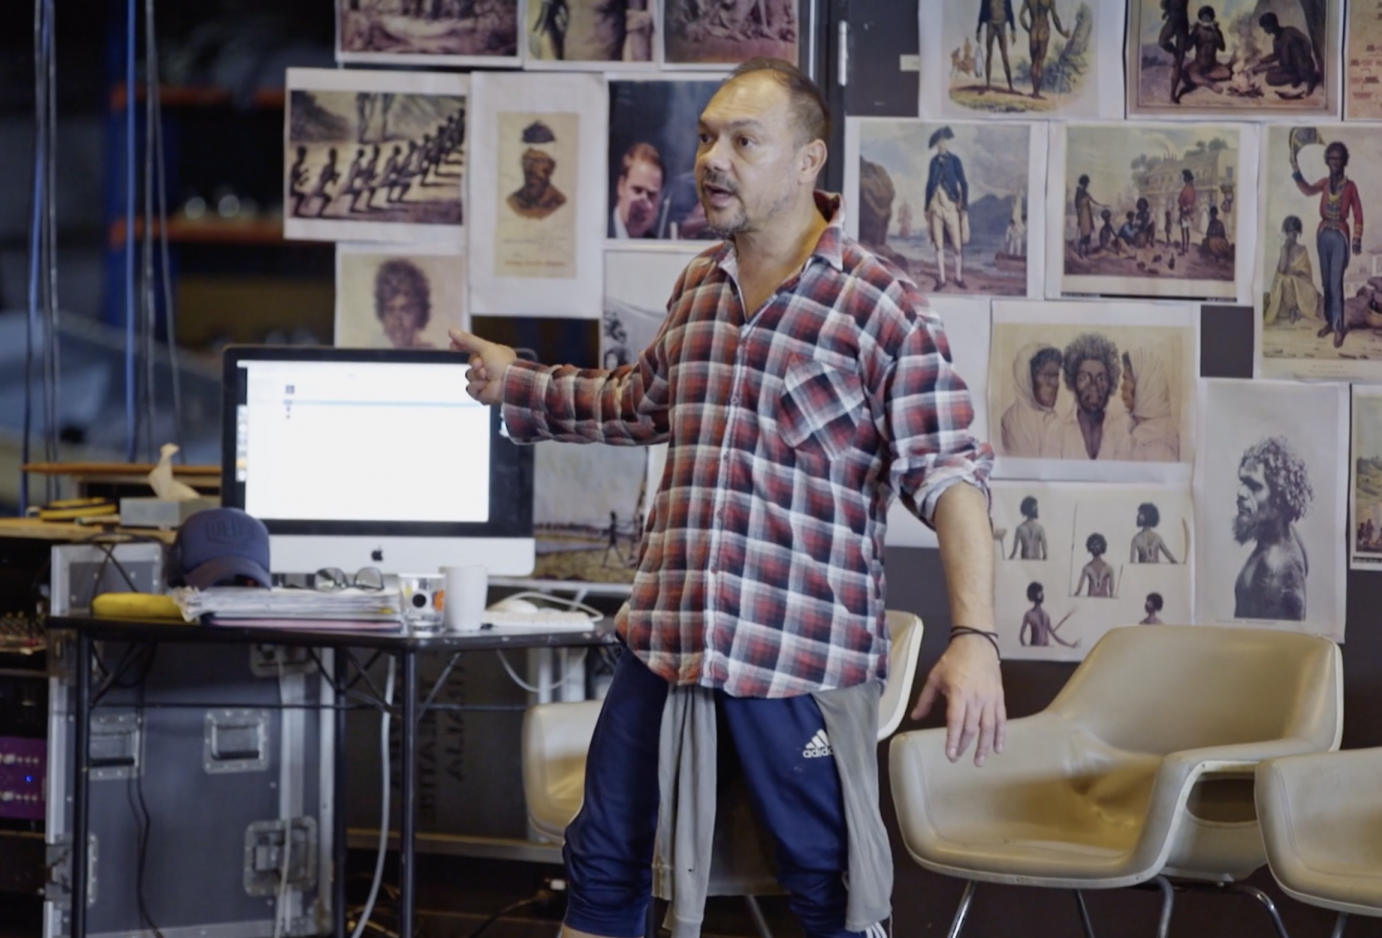 A man in a flannel  shirt stands in front of a wall of pictures, directing dancers